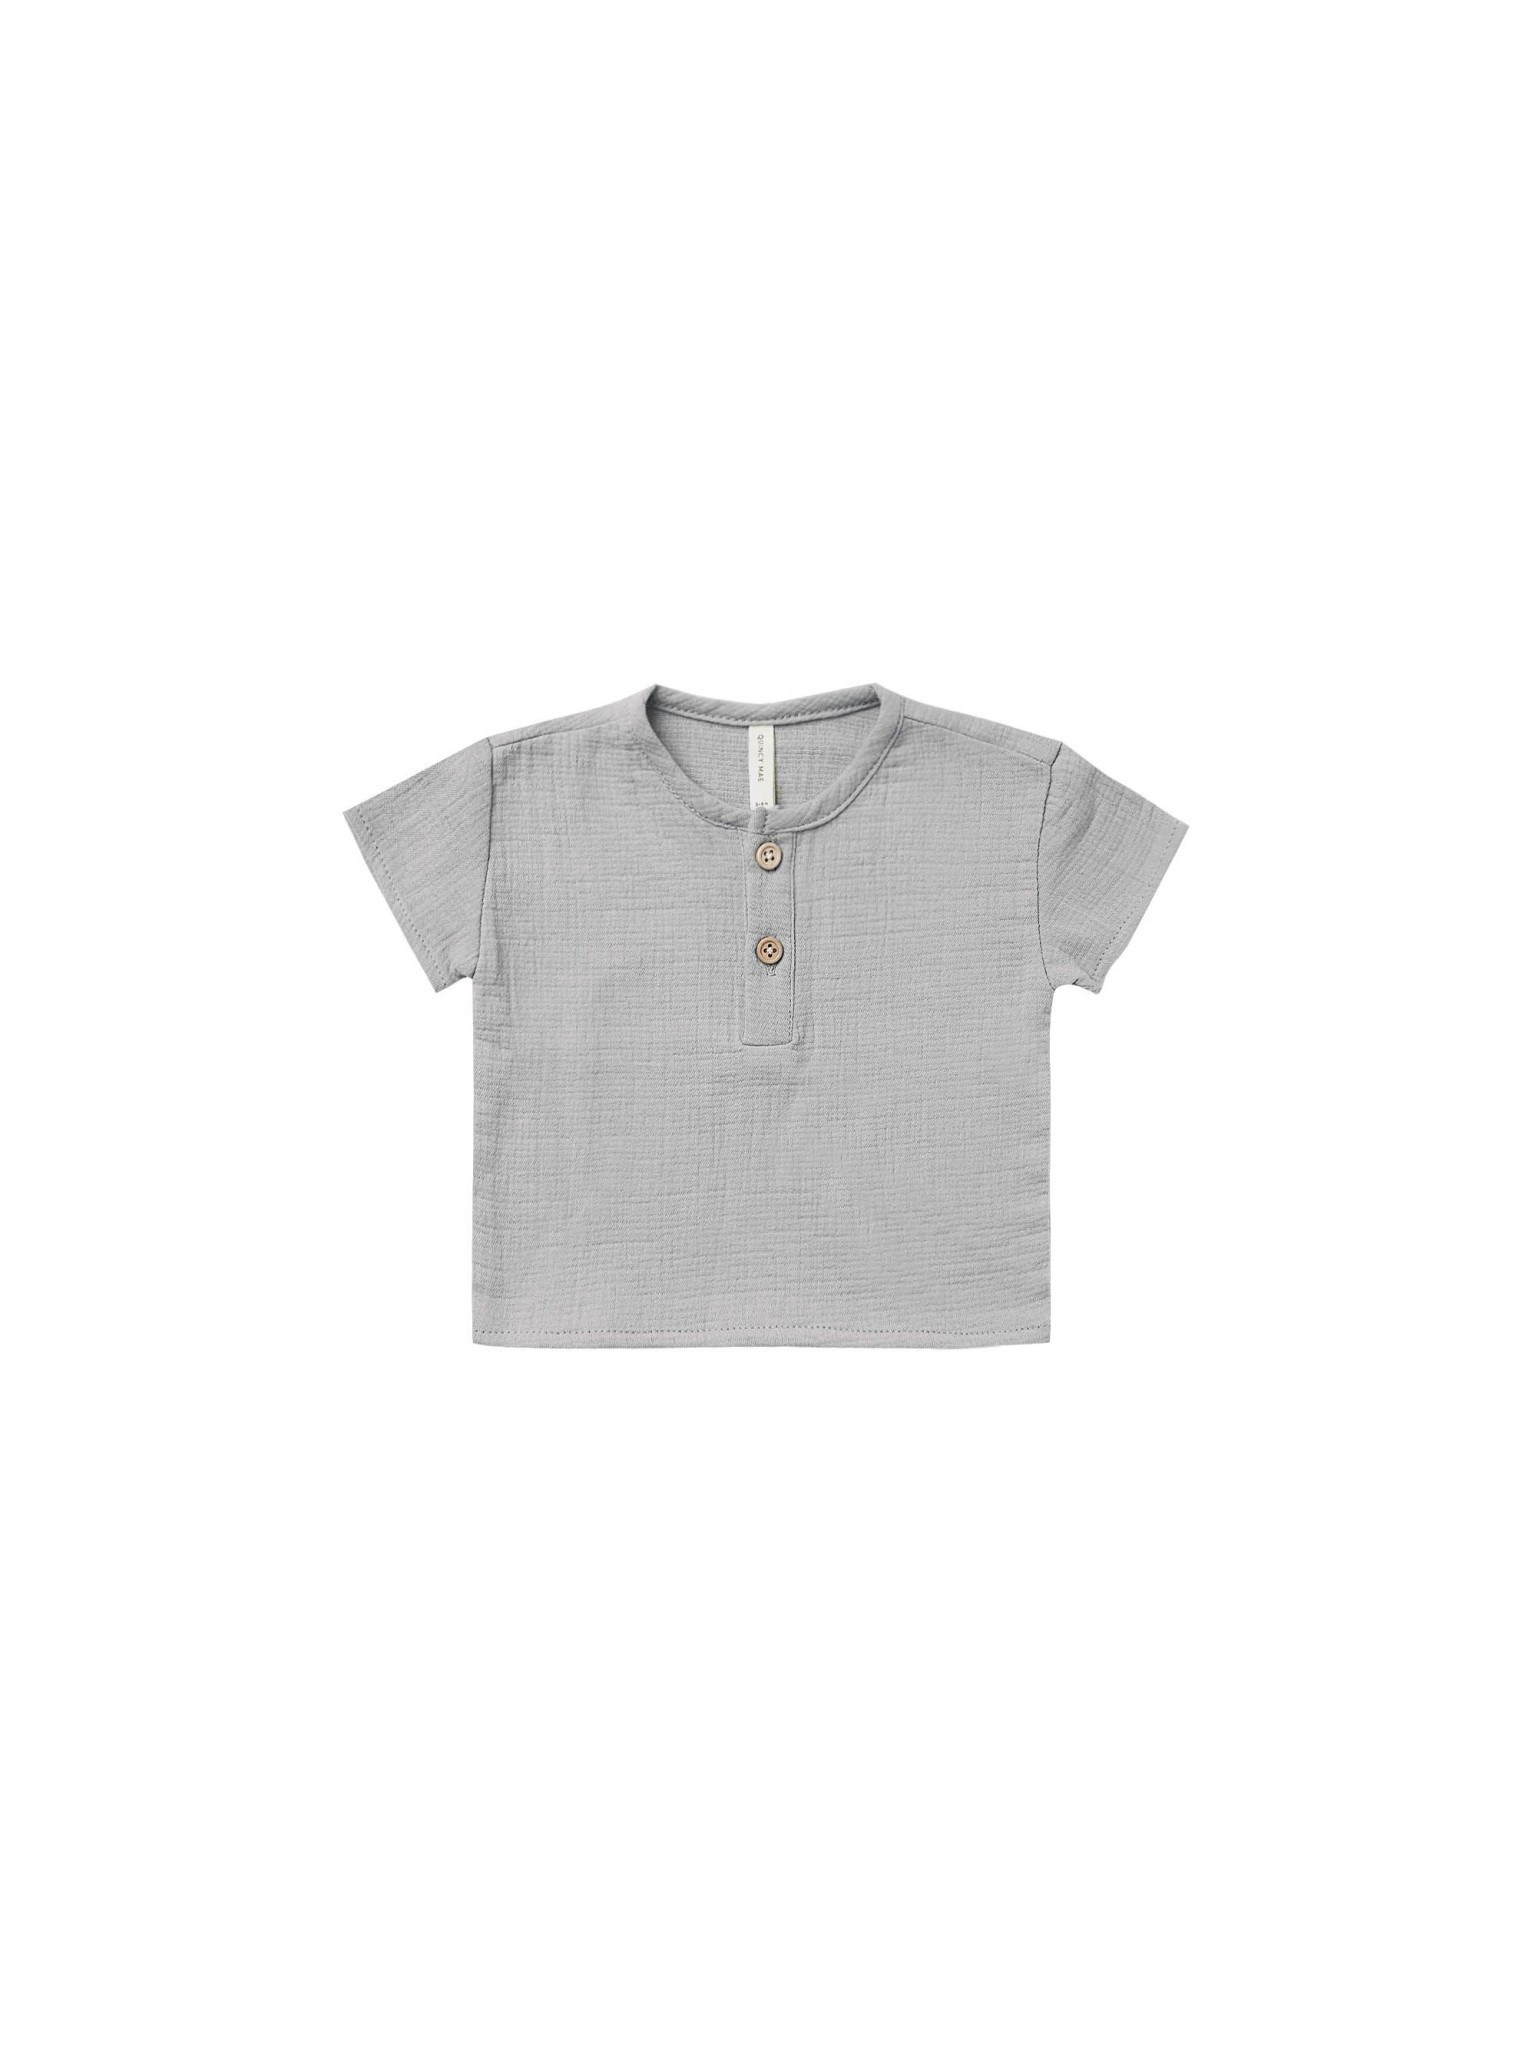 QUINCY MAE Woven Henry Top